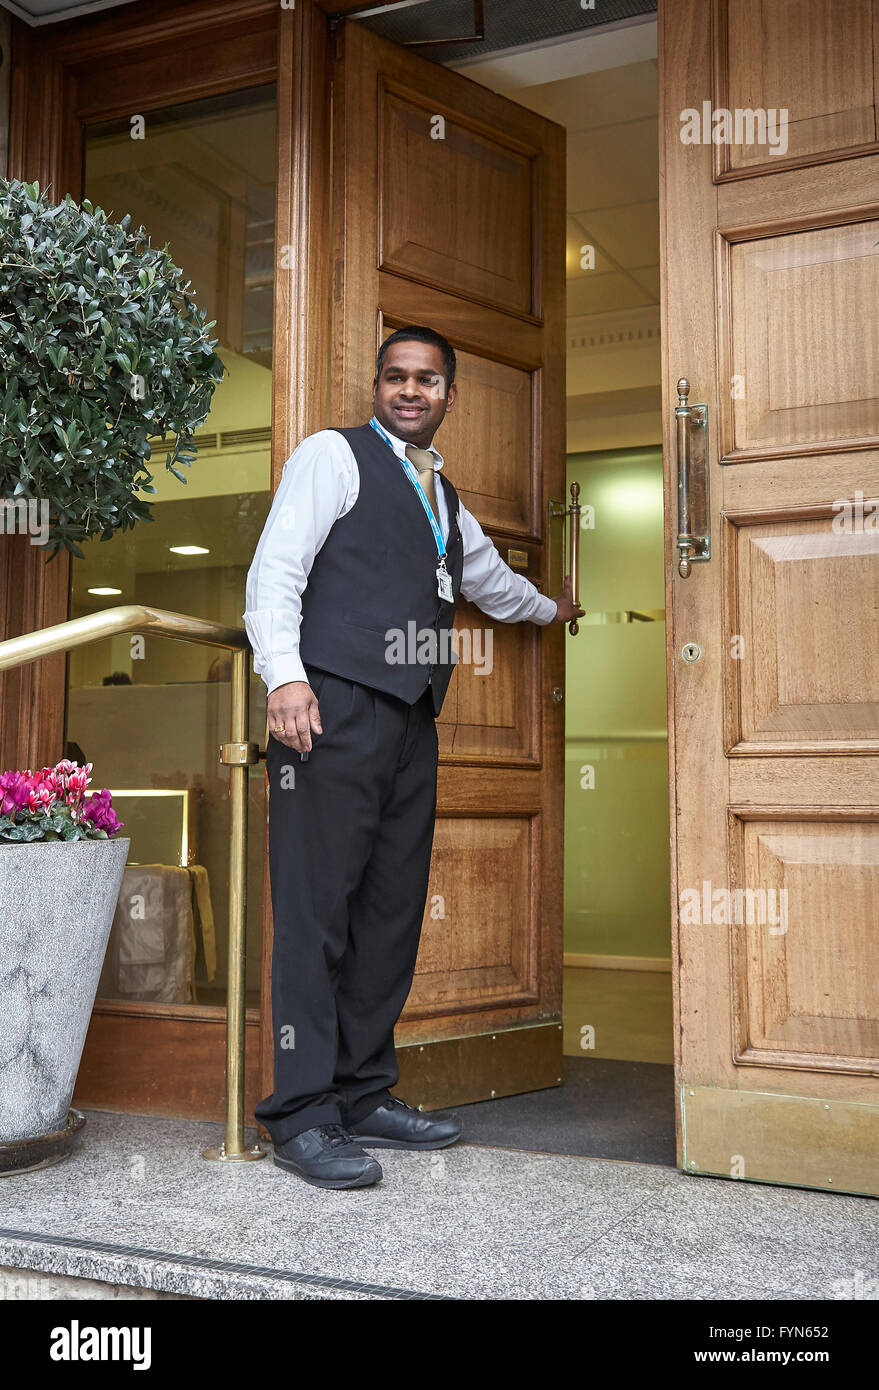 A hotel bellboy or Porter opening the front door of a hotel for a guest in the UK. - Stock Image